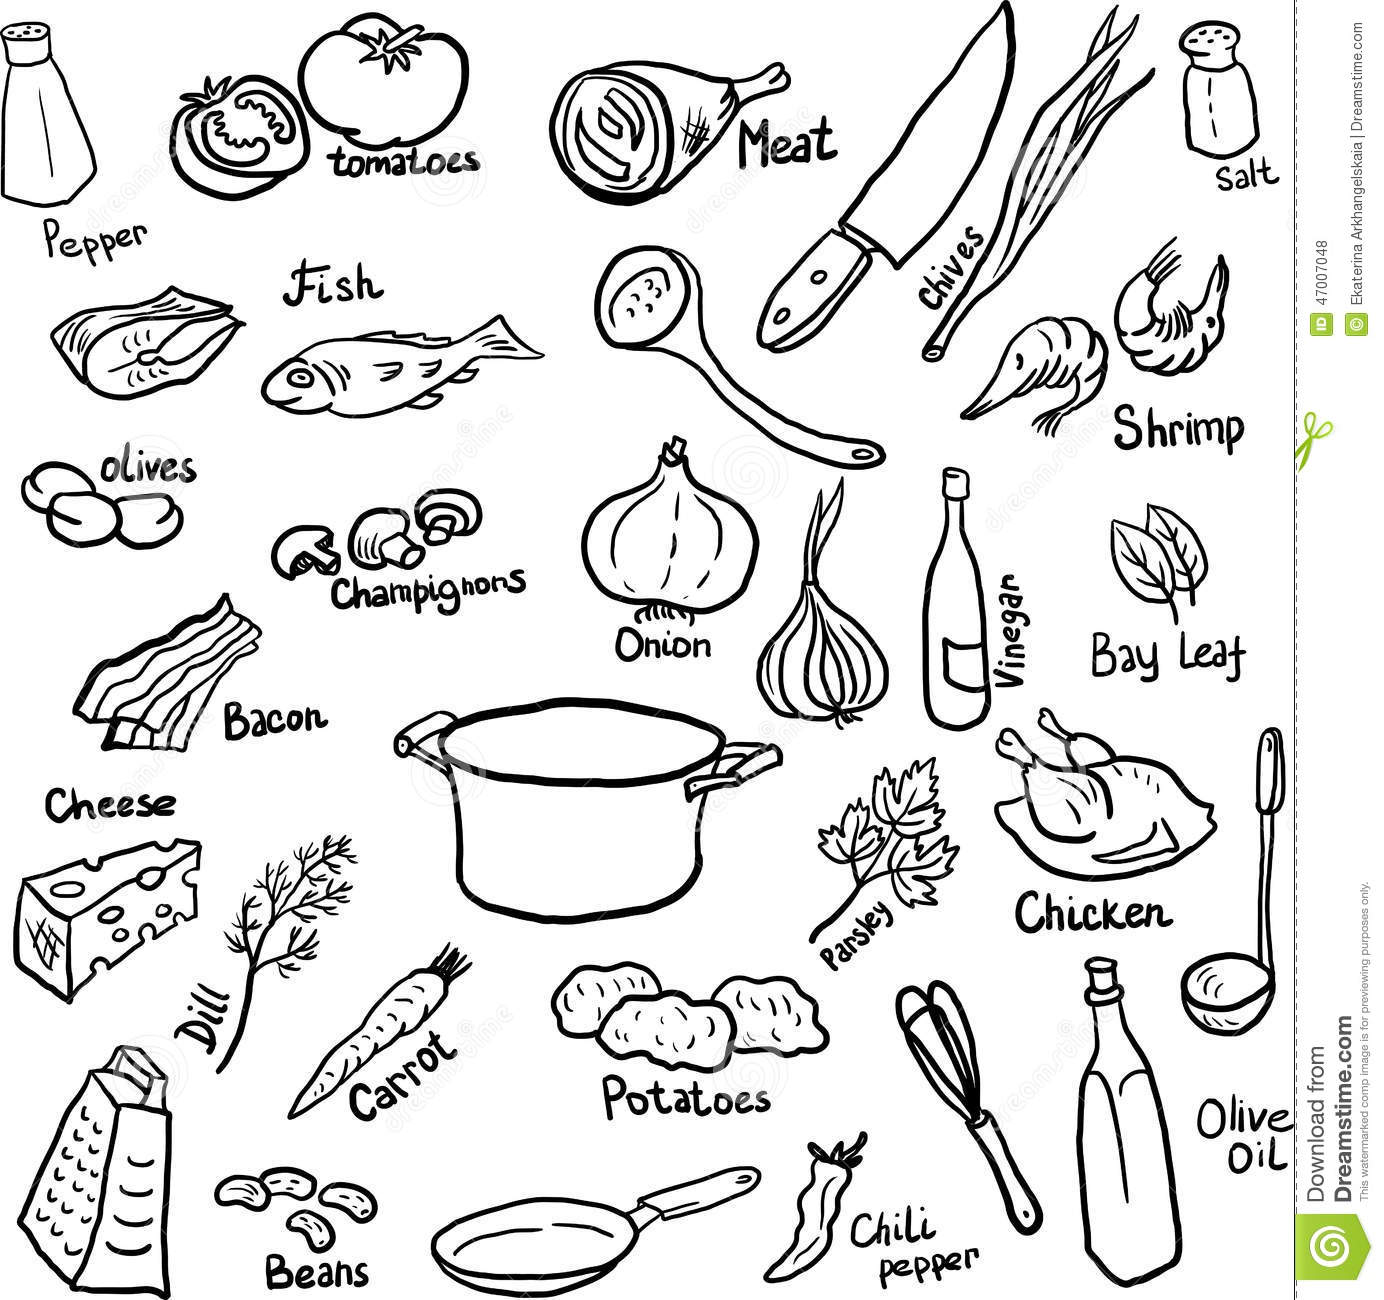 Dinner doodle set stock vector. Illustration of cookery - 47007048